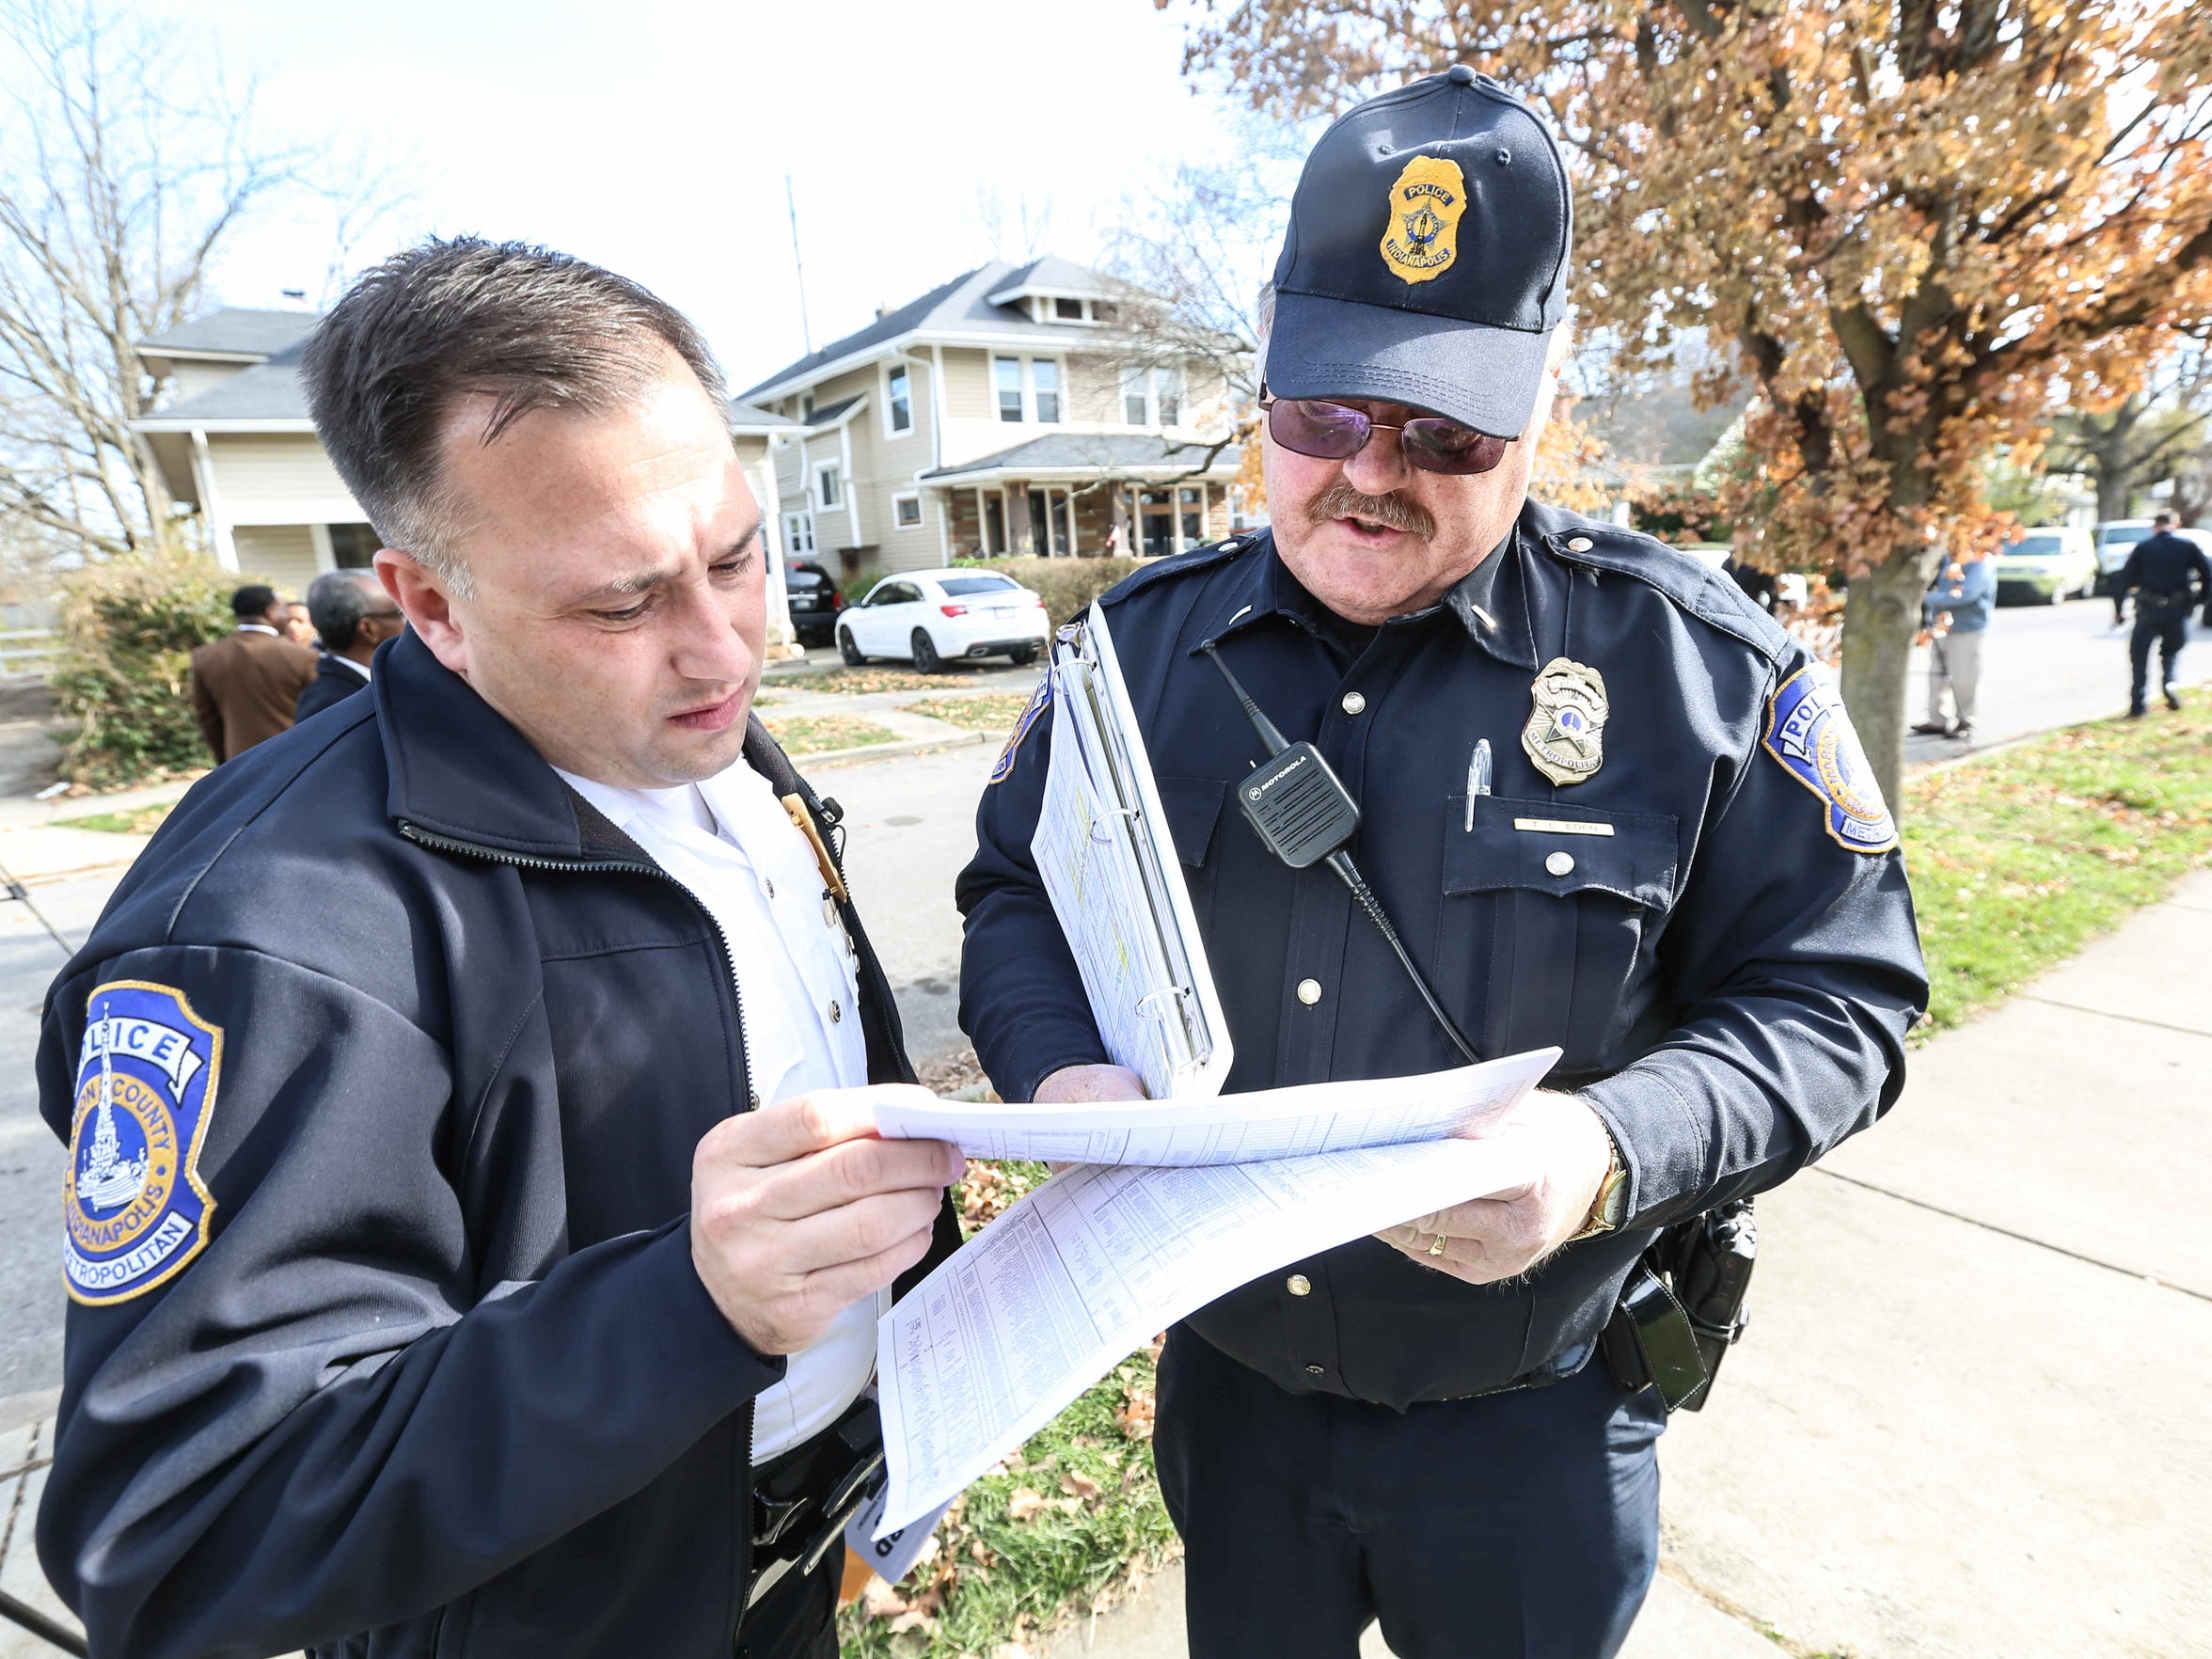 North District Commander Chris Bailey (left) and Lt. Terry Eden met after passing out fliers seeking the public's help in solving the slaying of Deshaun Swanson. IMPD officers met for roll call Nov. 25, 2015, outside the house in the 3900 block of Graceland Avenue where Deshawn, 10, was gunned down while attending a memorial service Sept. 19.